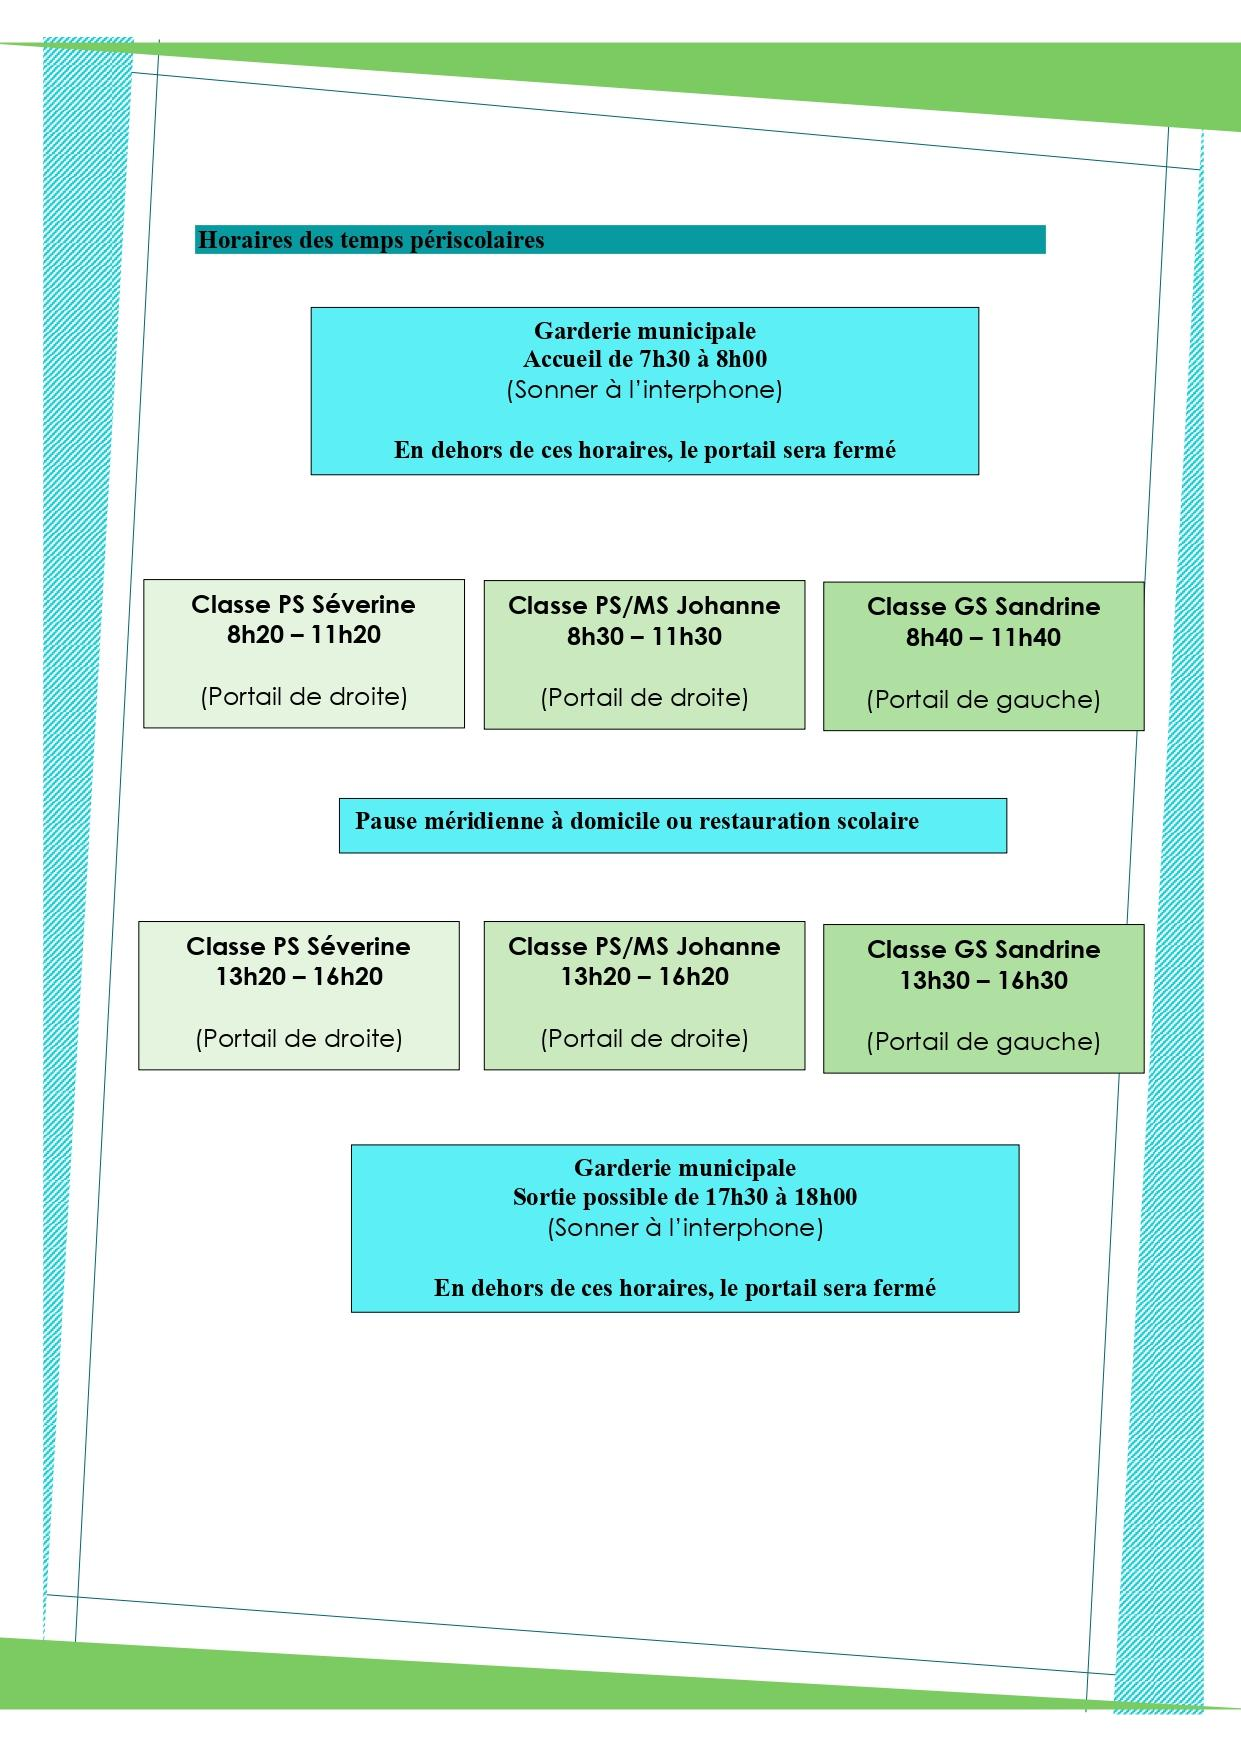 2021 09 01 note d information rentree scolaire maternelle page 0004